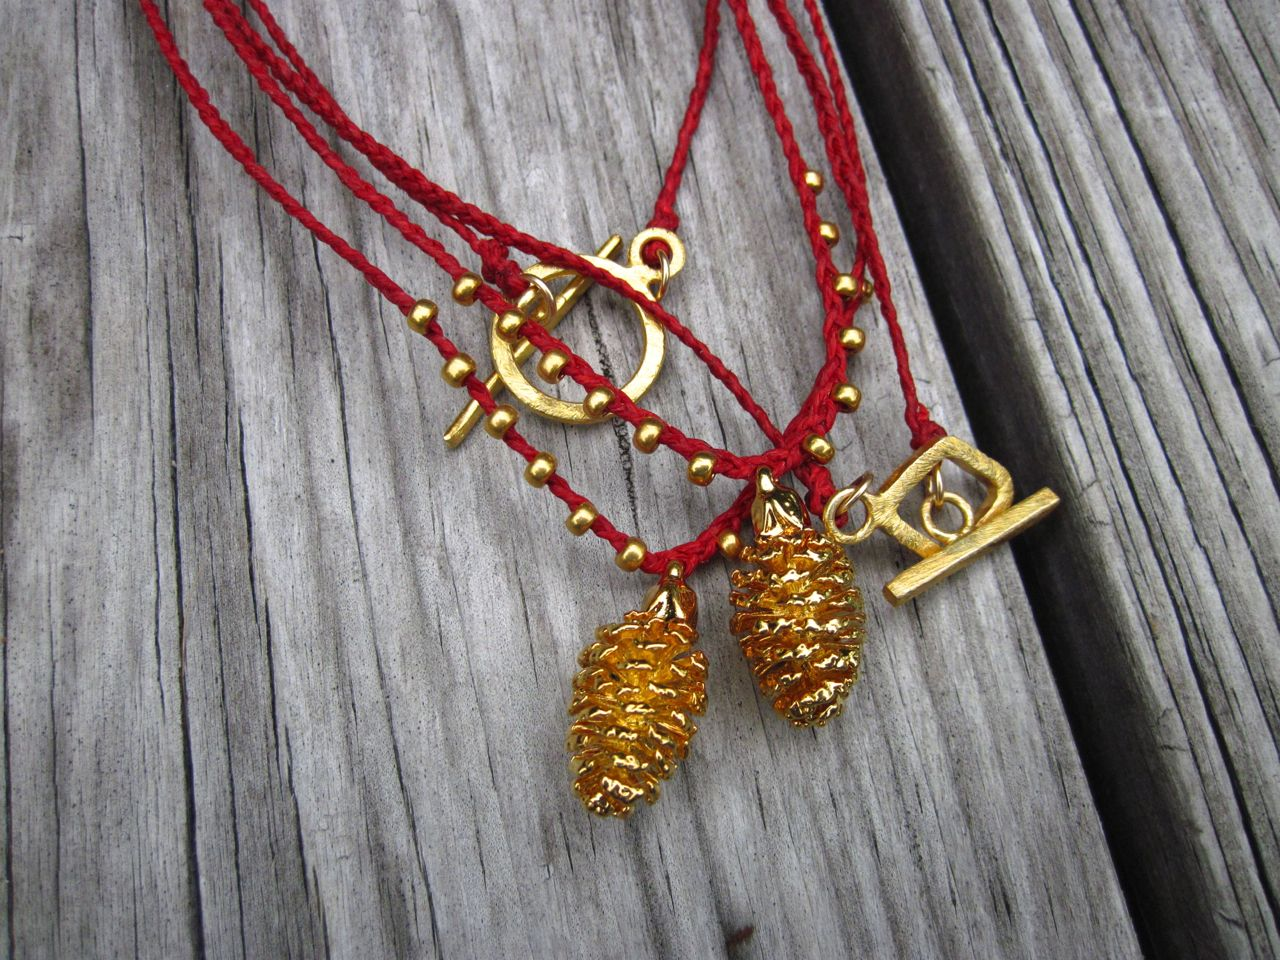 Pinecone Necklaces